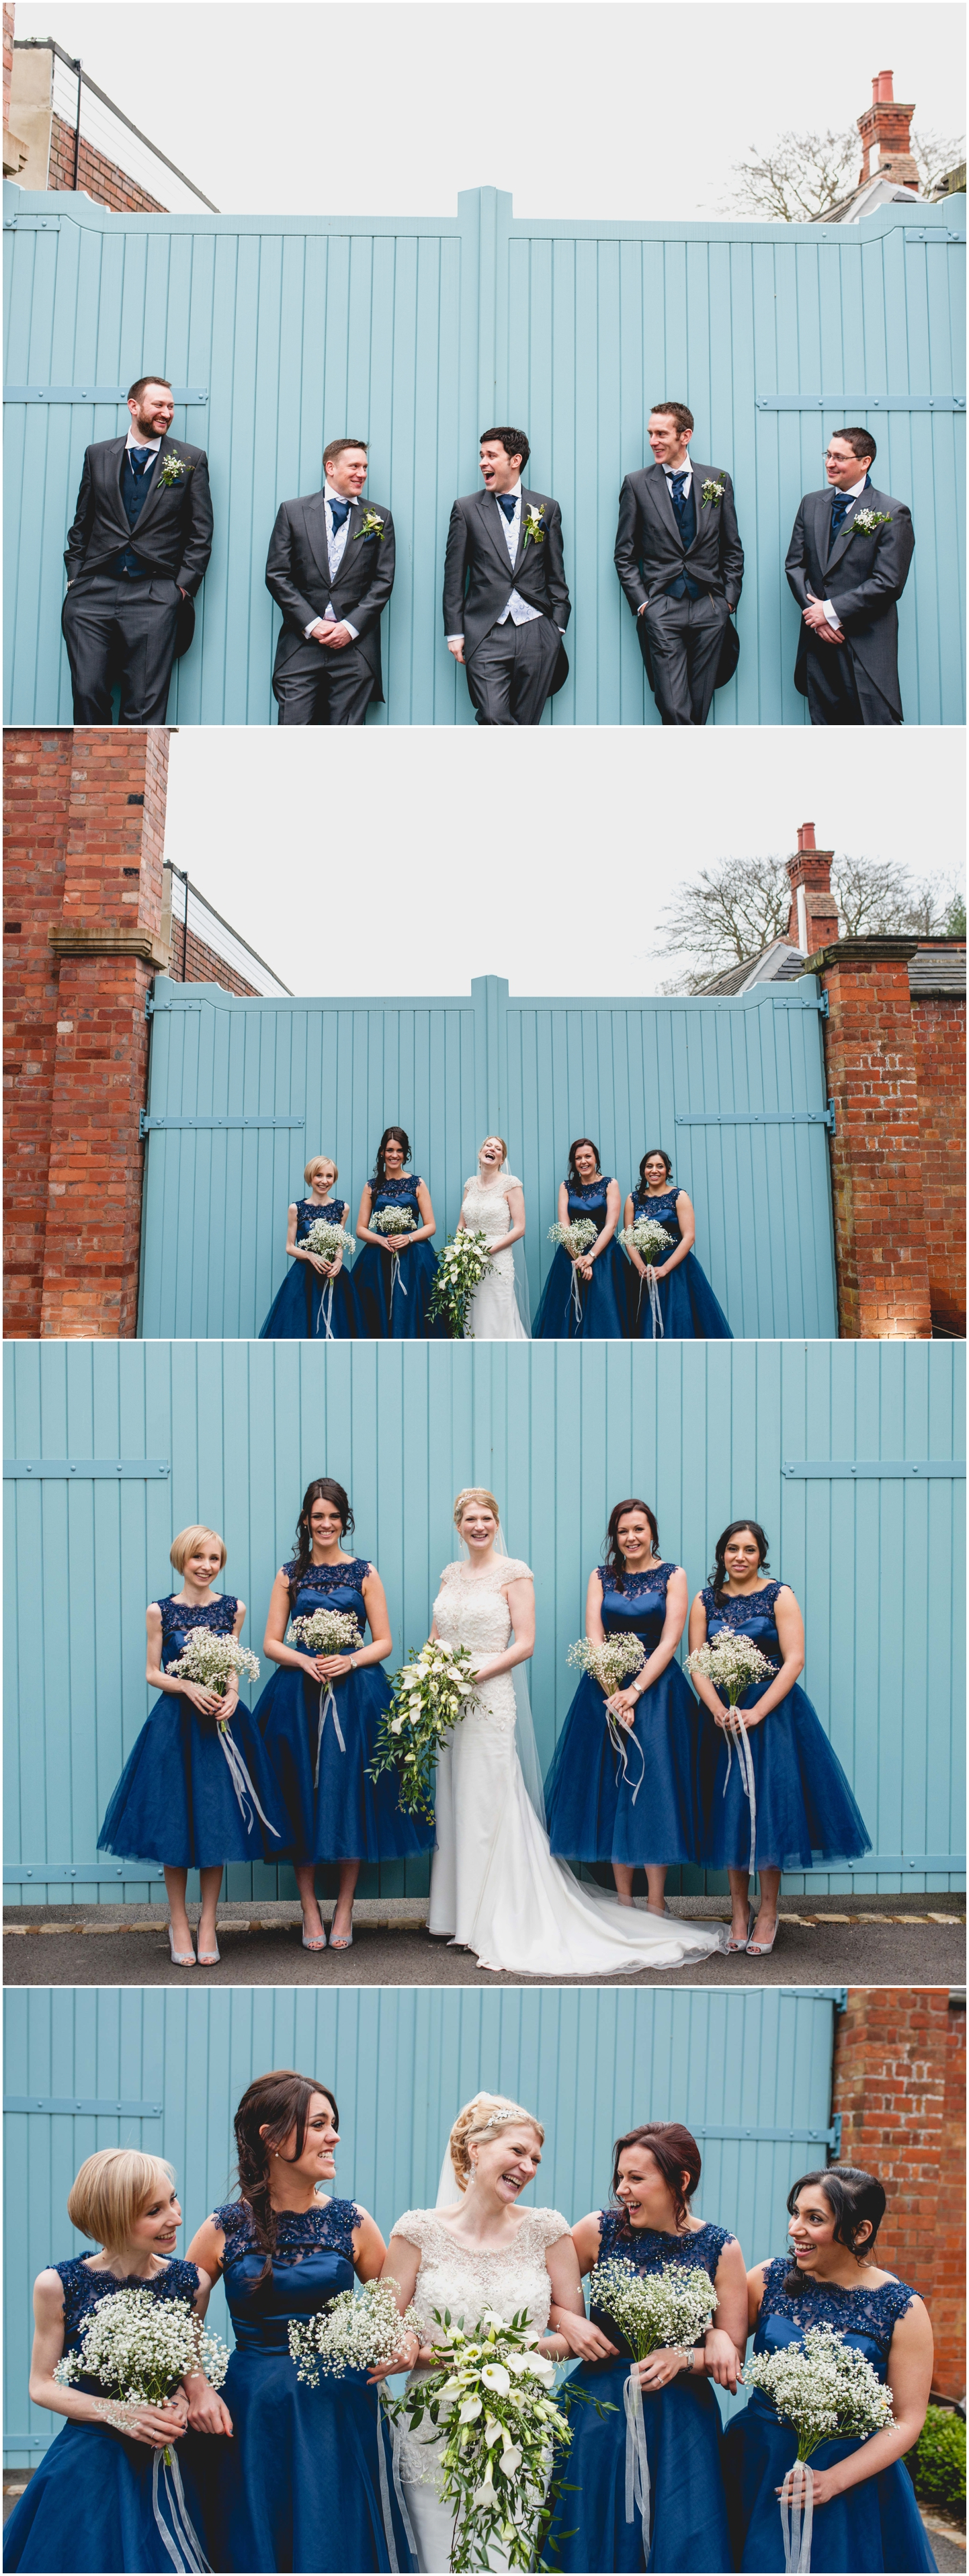 Pendrell Hall Wedding Photography by Lisa Carpenter Photography, West Midlands photographer